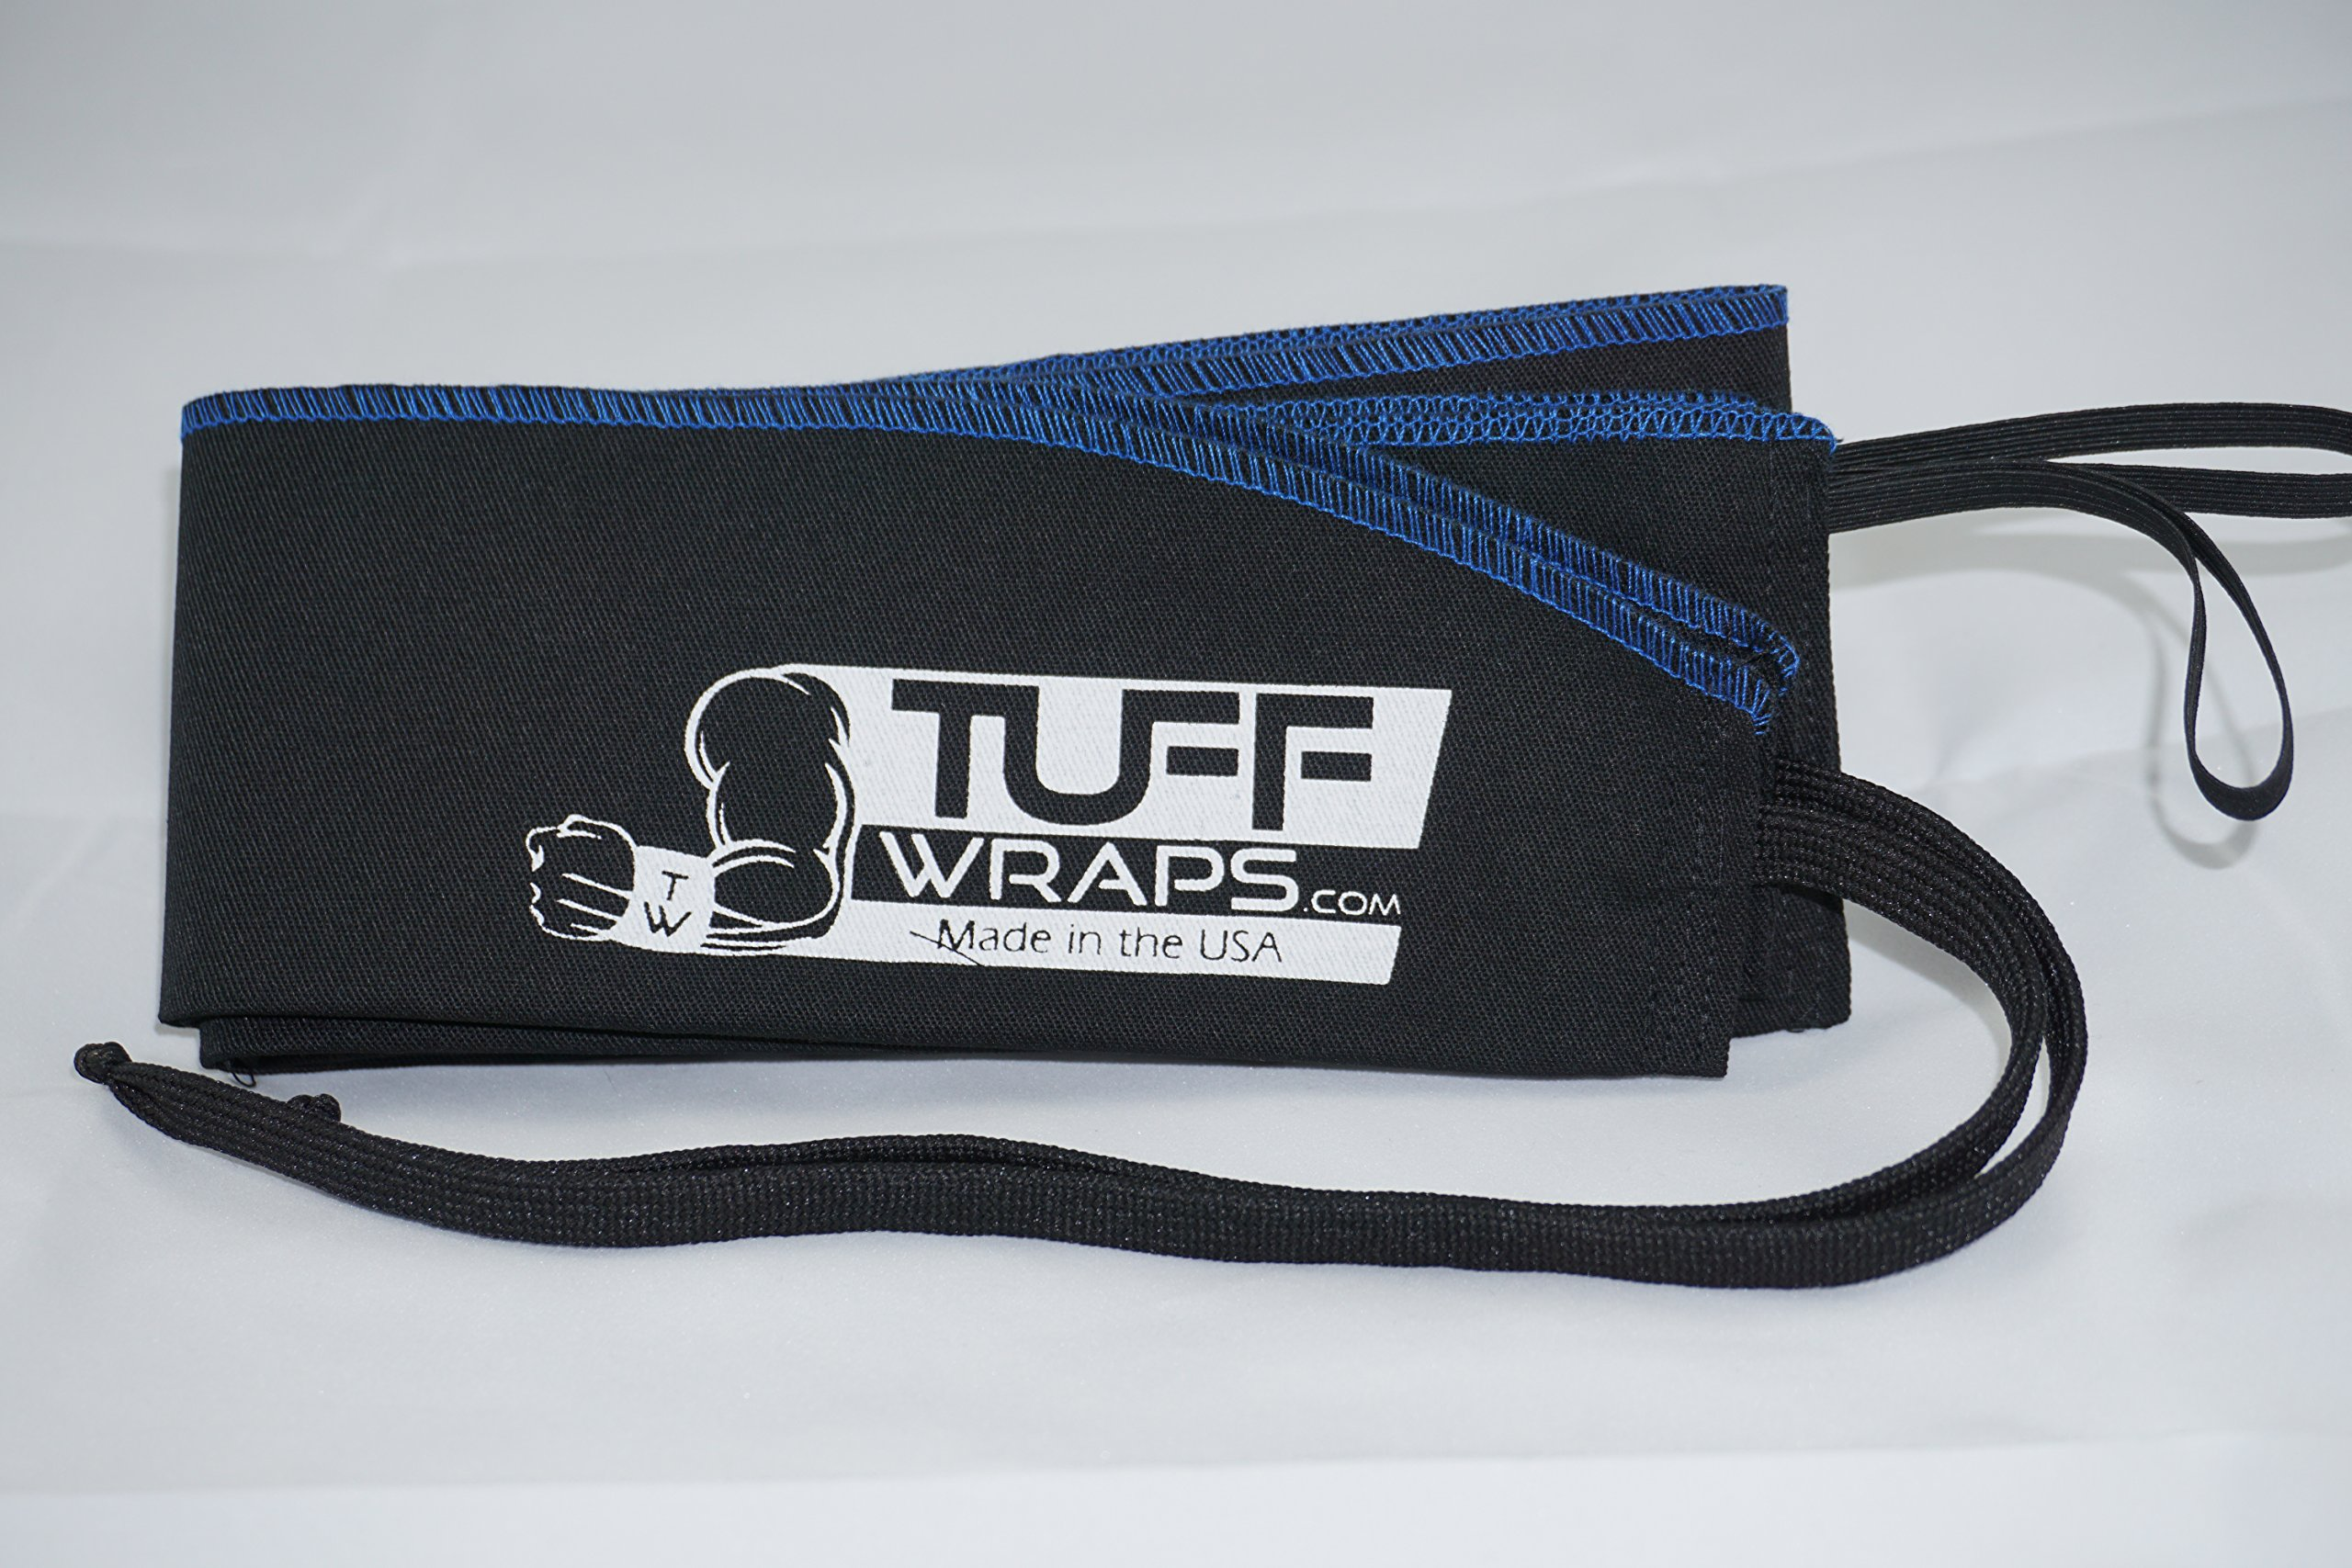 Blue/Black Tuffwraps: Wraps for Crossfit, Olympic Weightlifting, Power Lifting. Innovative Thumb Loop for Easy Application